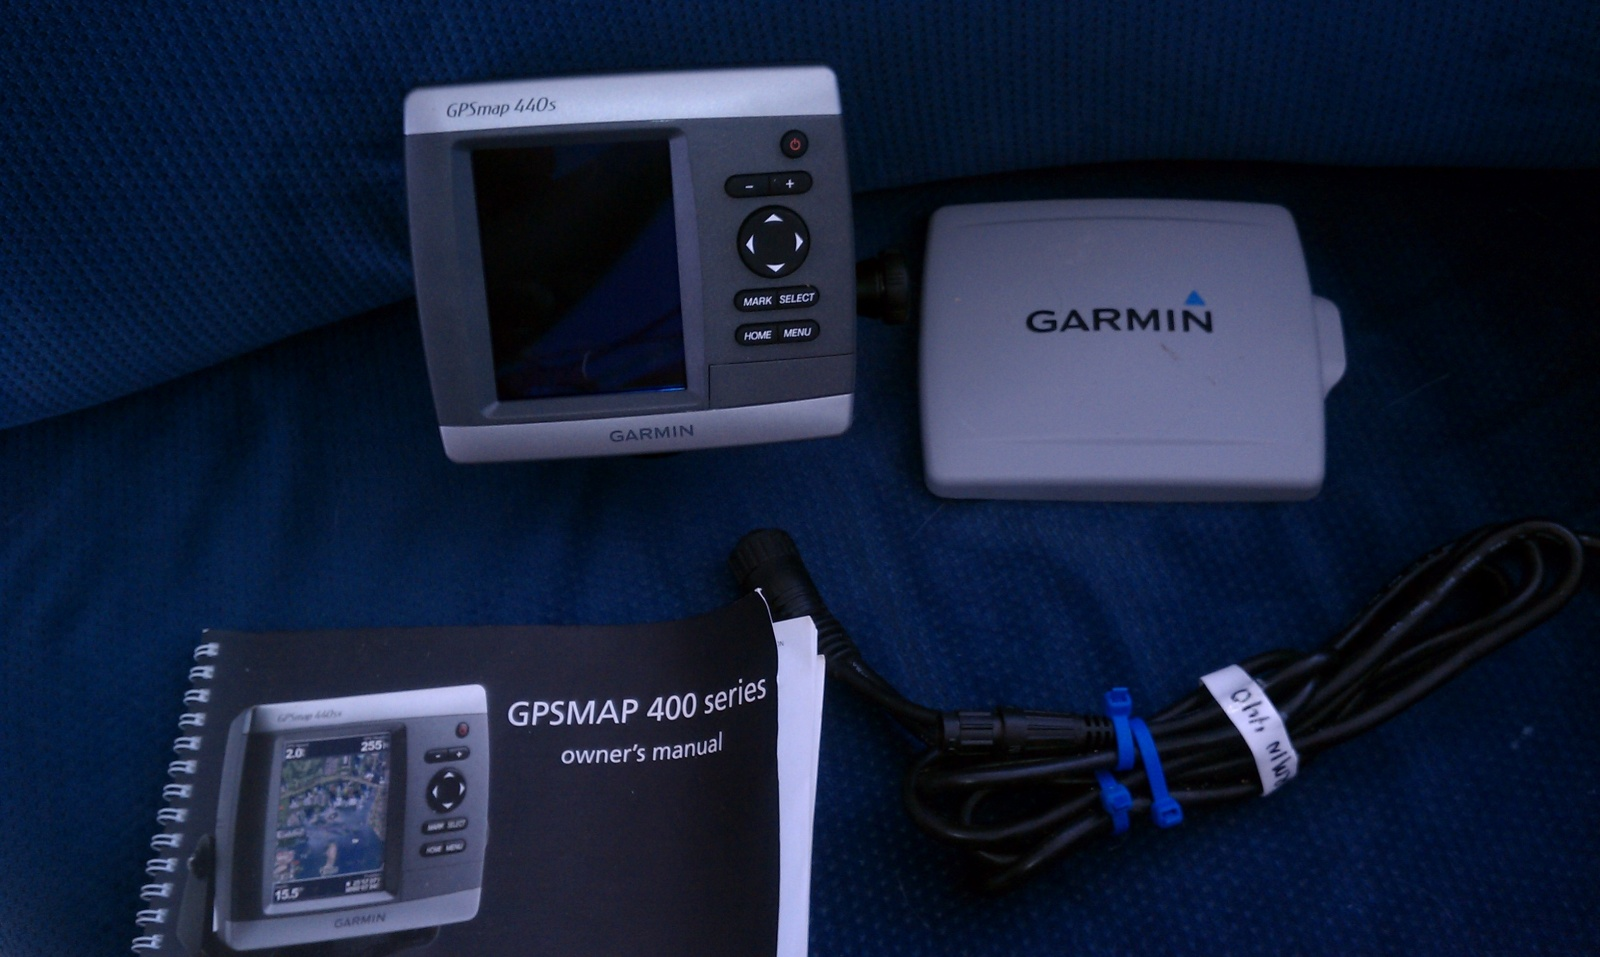 For Sale: Garmin GPSmap 440s (used) - Cruisers & Sailing Forums on